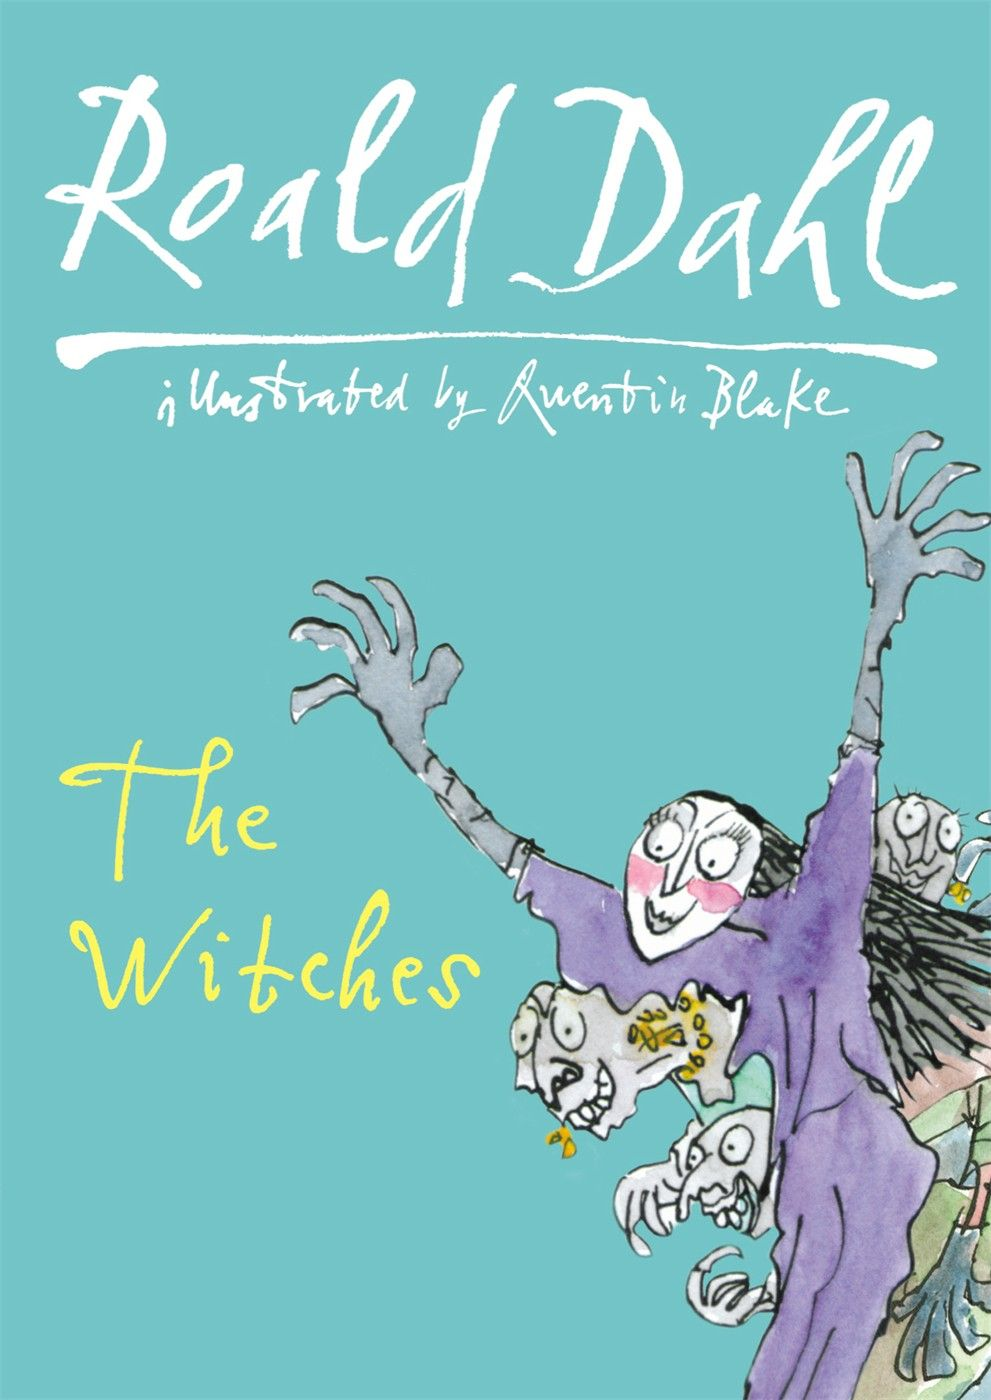 Workbooks the witches roald dahl worksheets : Roald Dahl's The Witches, illustrated by Quentin Blake. | story ...